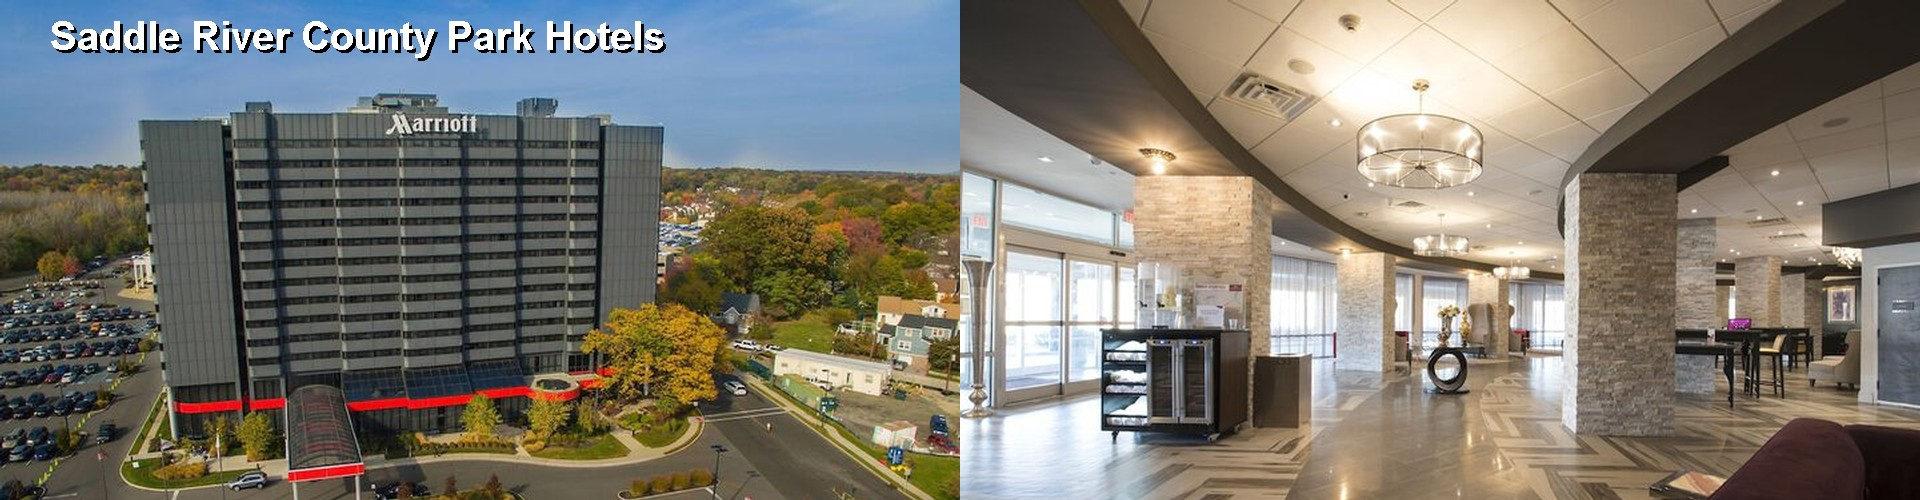 5 Best Hotels near Saddle River County Park